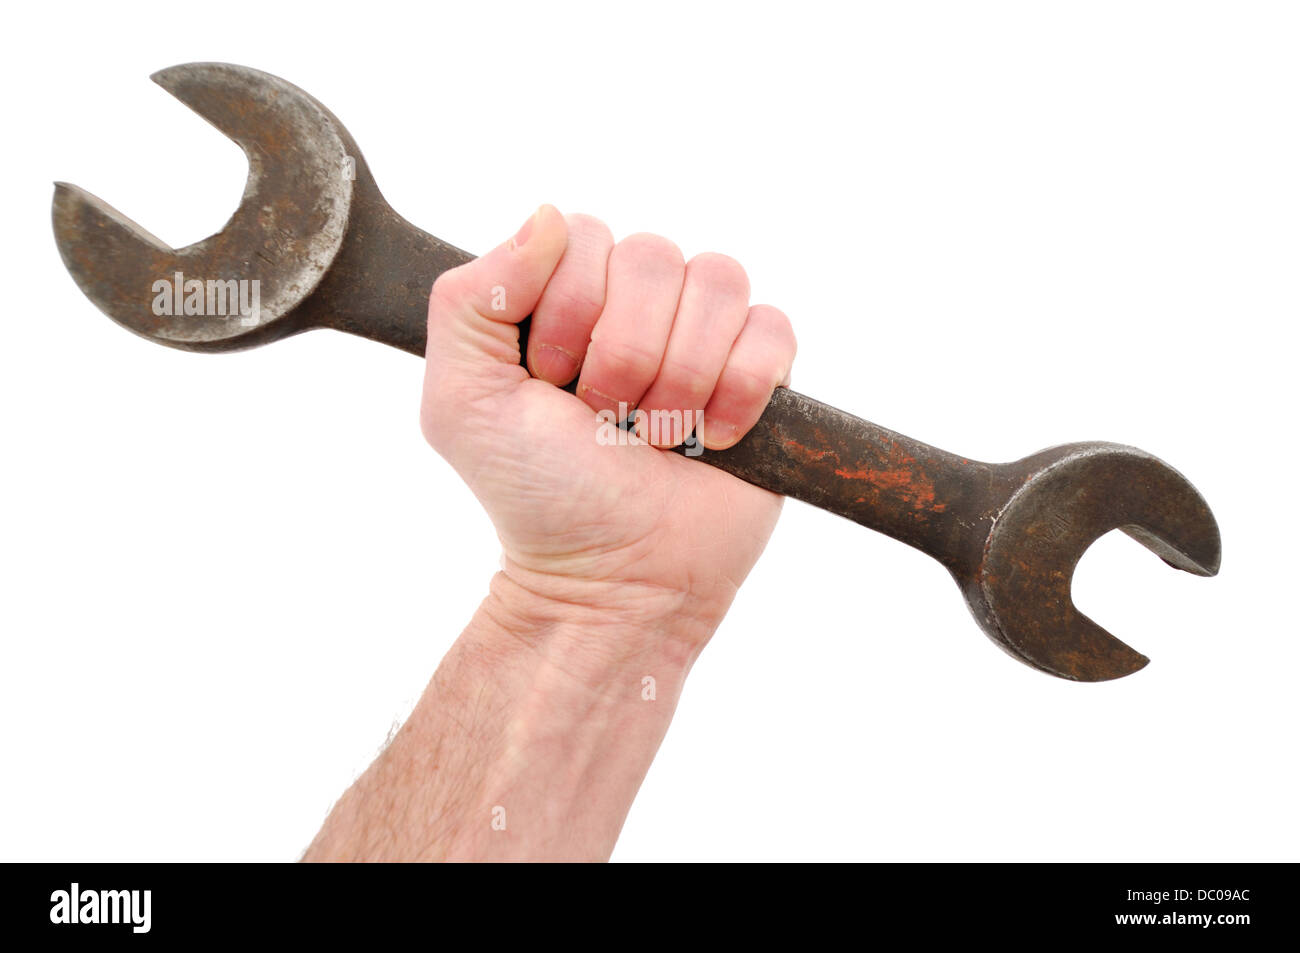 Hand holding a large open end spanner / wrench - Stock Image